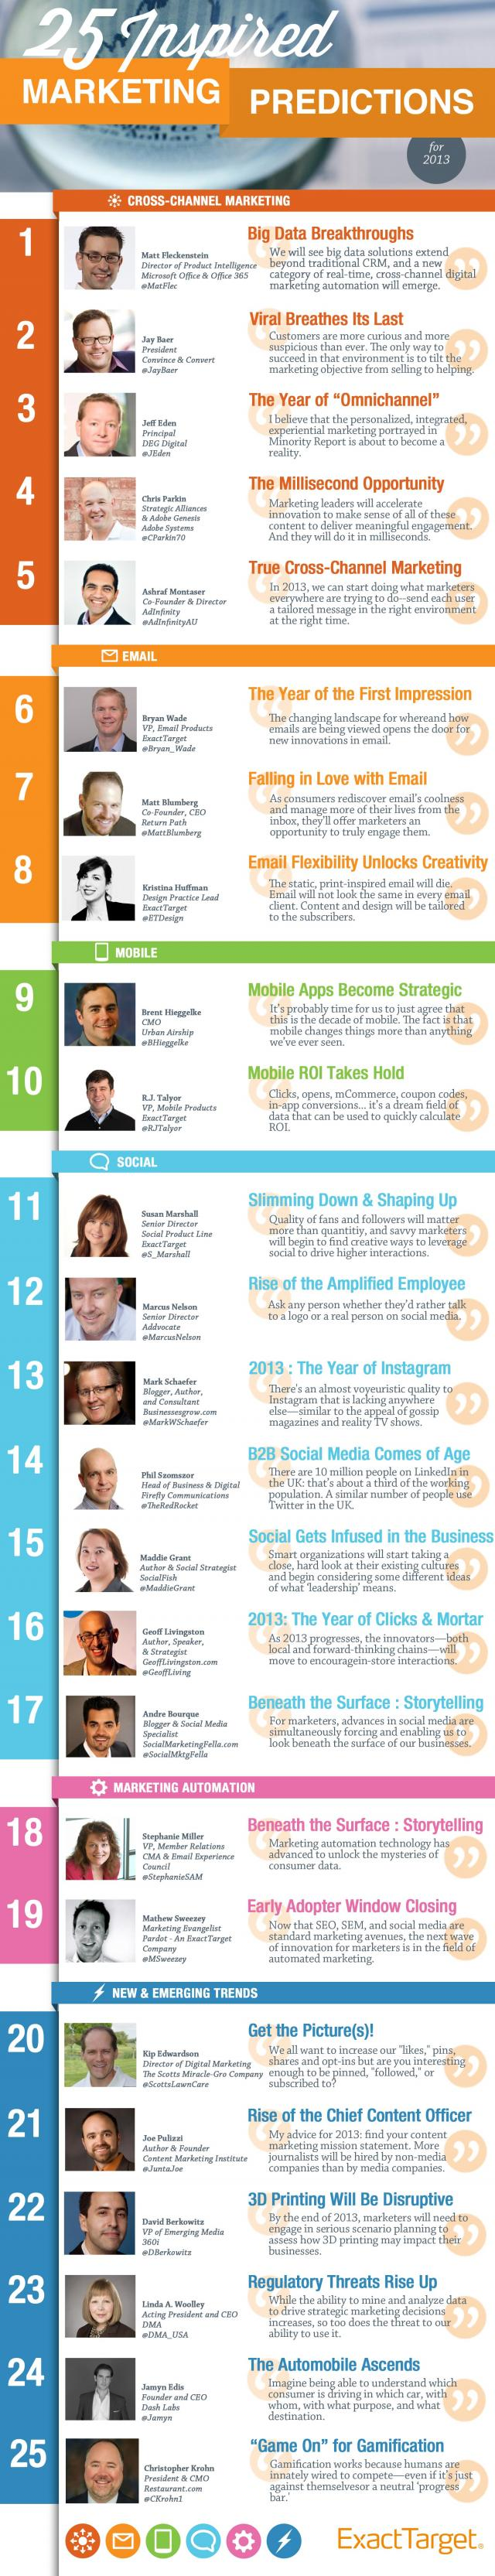 Marketing Tips For 2013 From 25 Marketing Experts [Infographic]